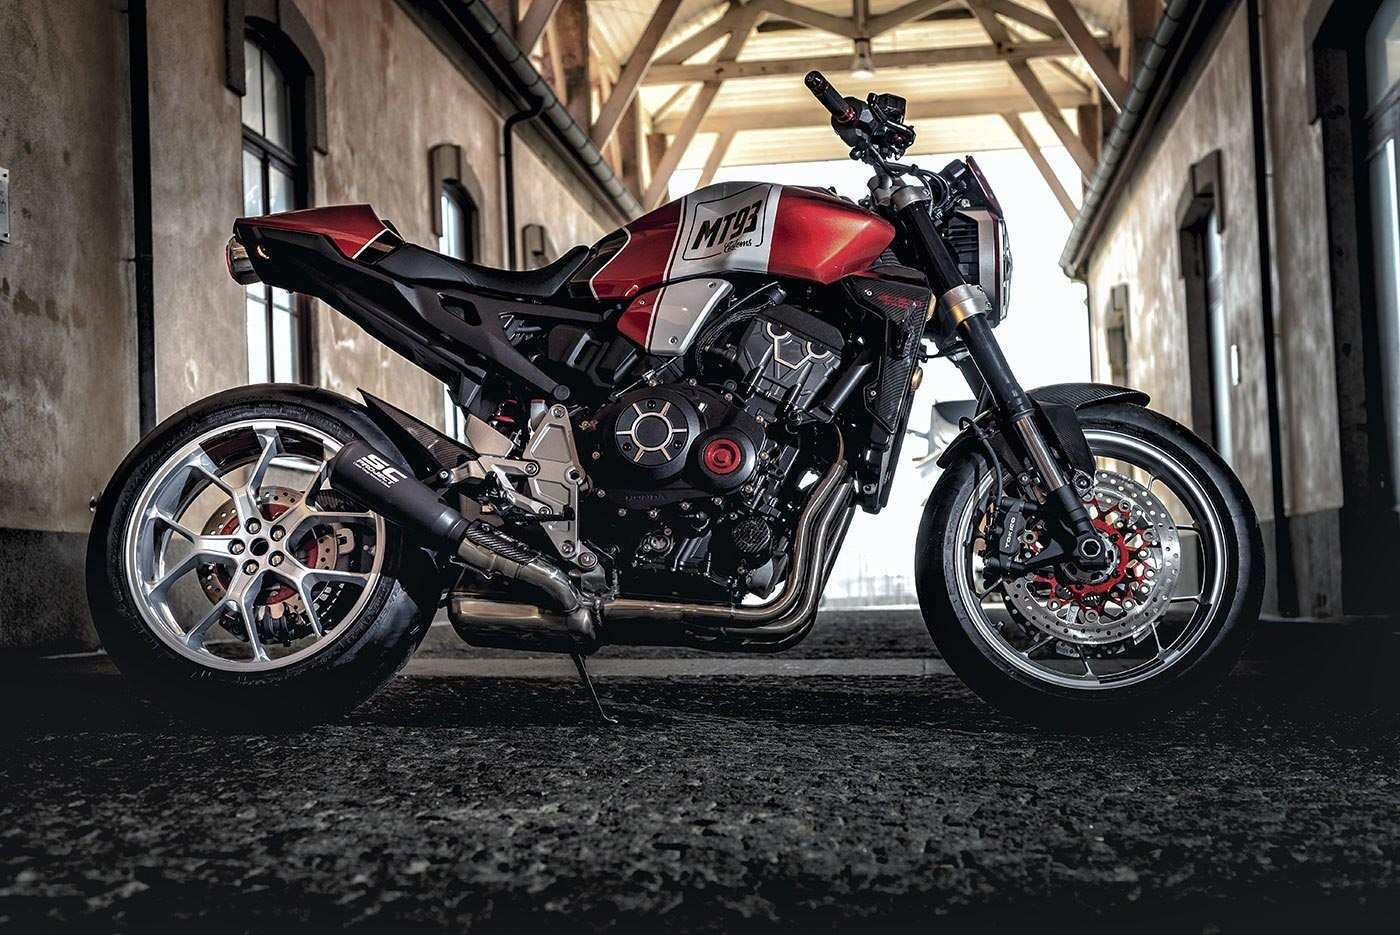 33 All New Honda Motorcycles 2020 Price Design And Review